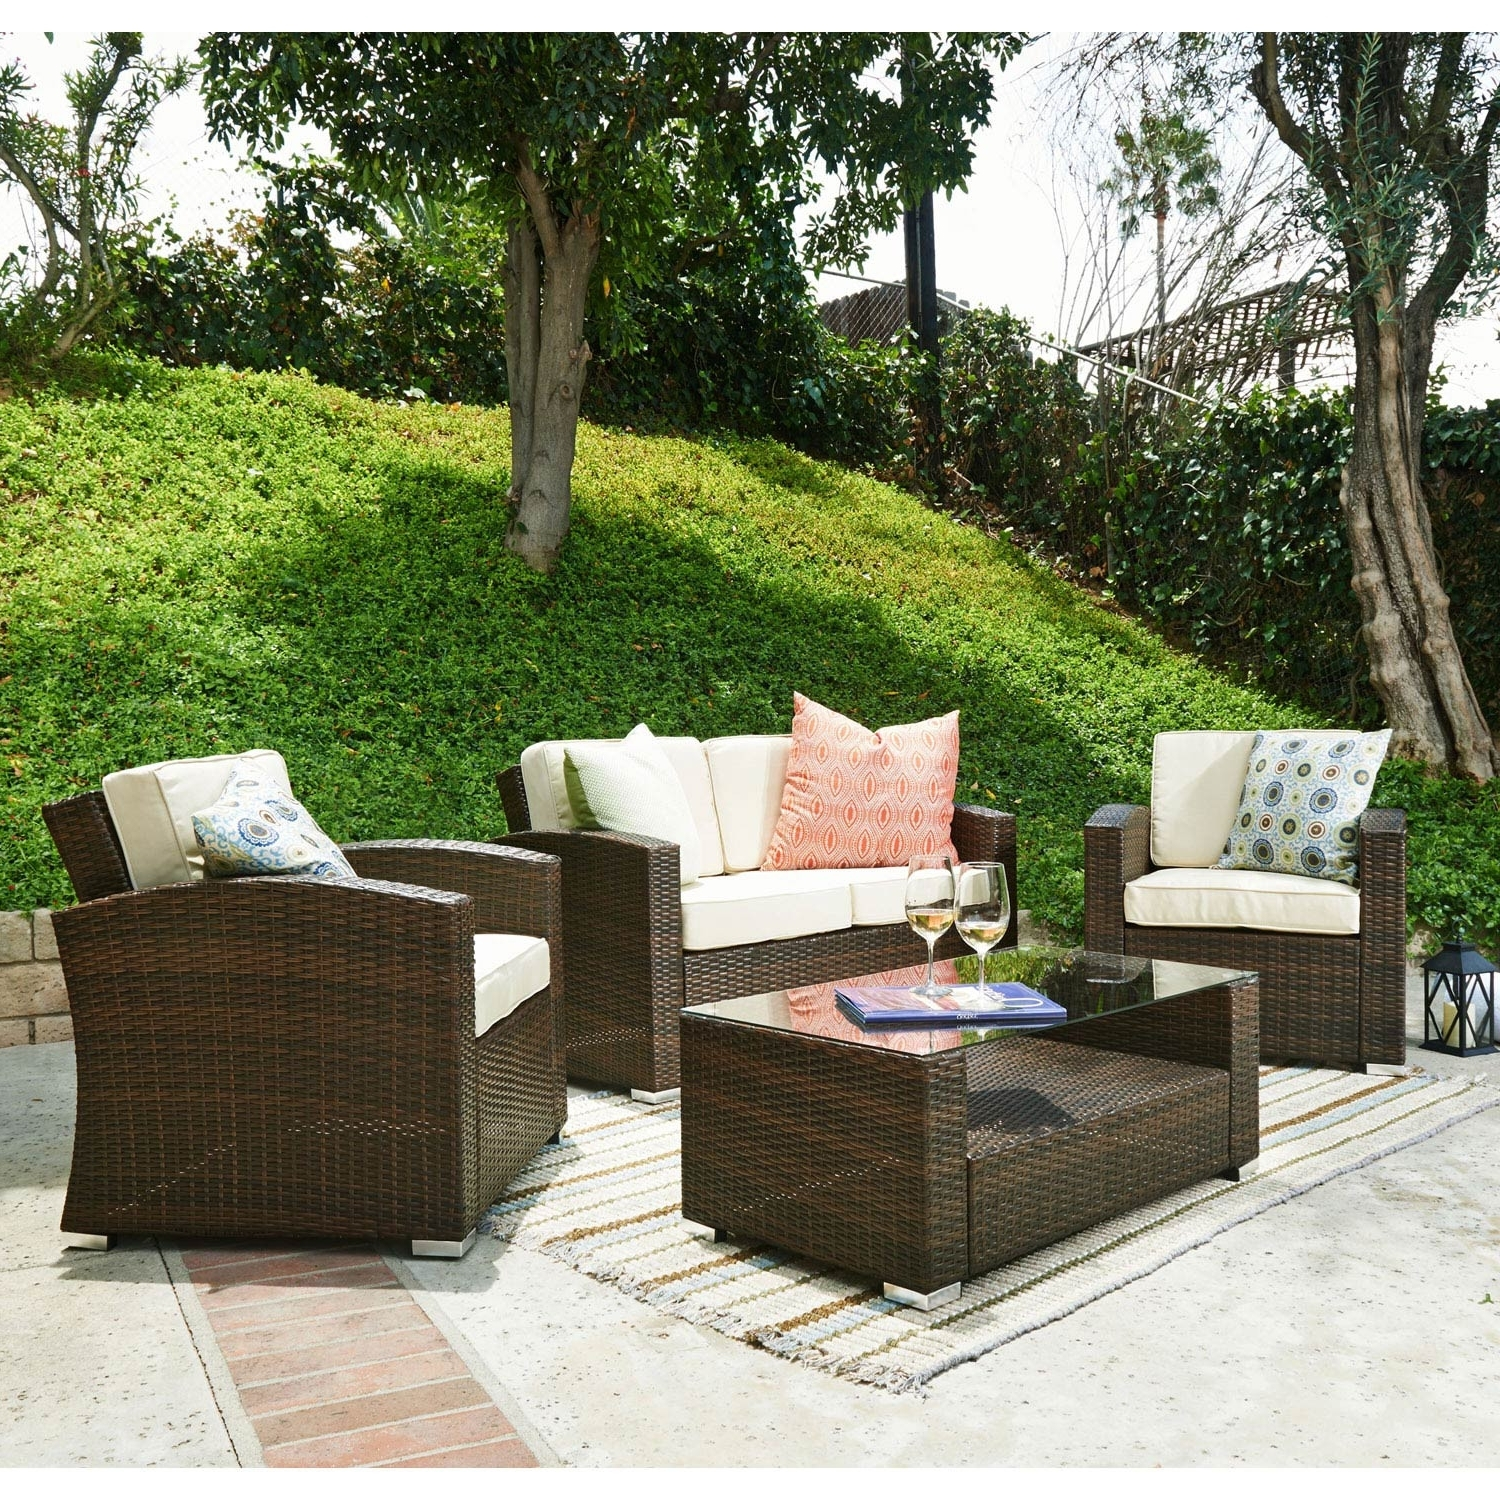 Trendy Outdoor Patio Furniture Conversation Sets Inside 30 Amazing Patio Furniture Conversation Set Ideas (View 10 of 20)